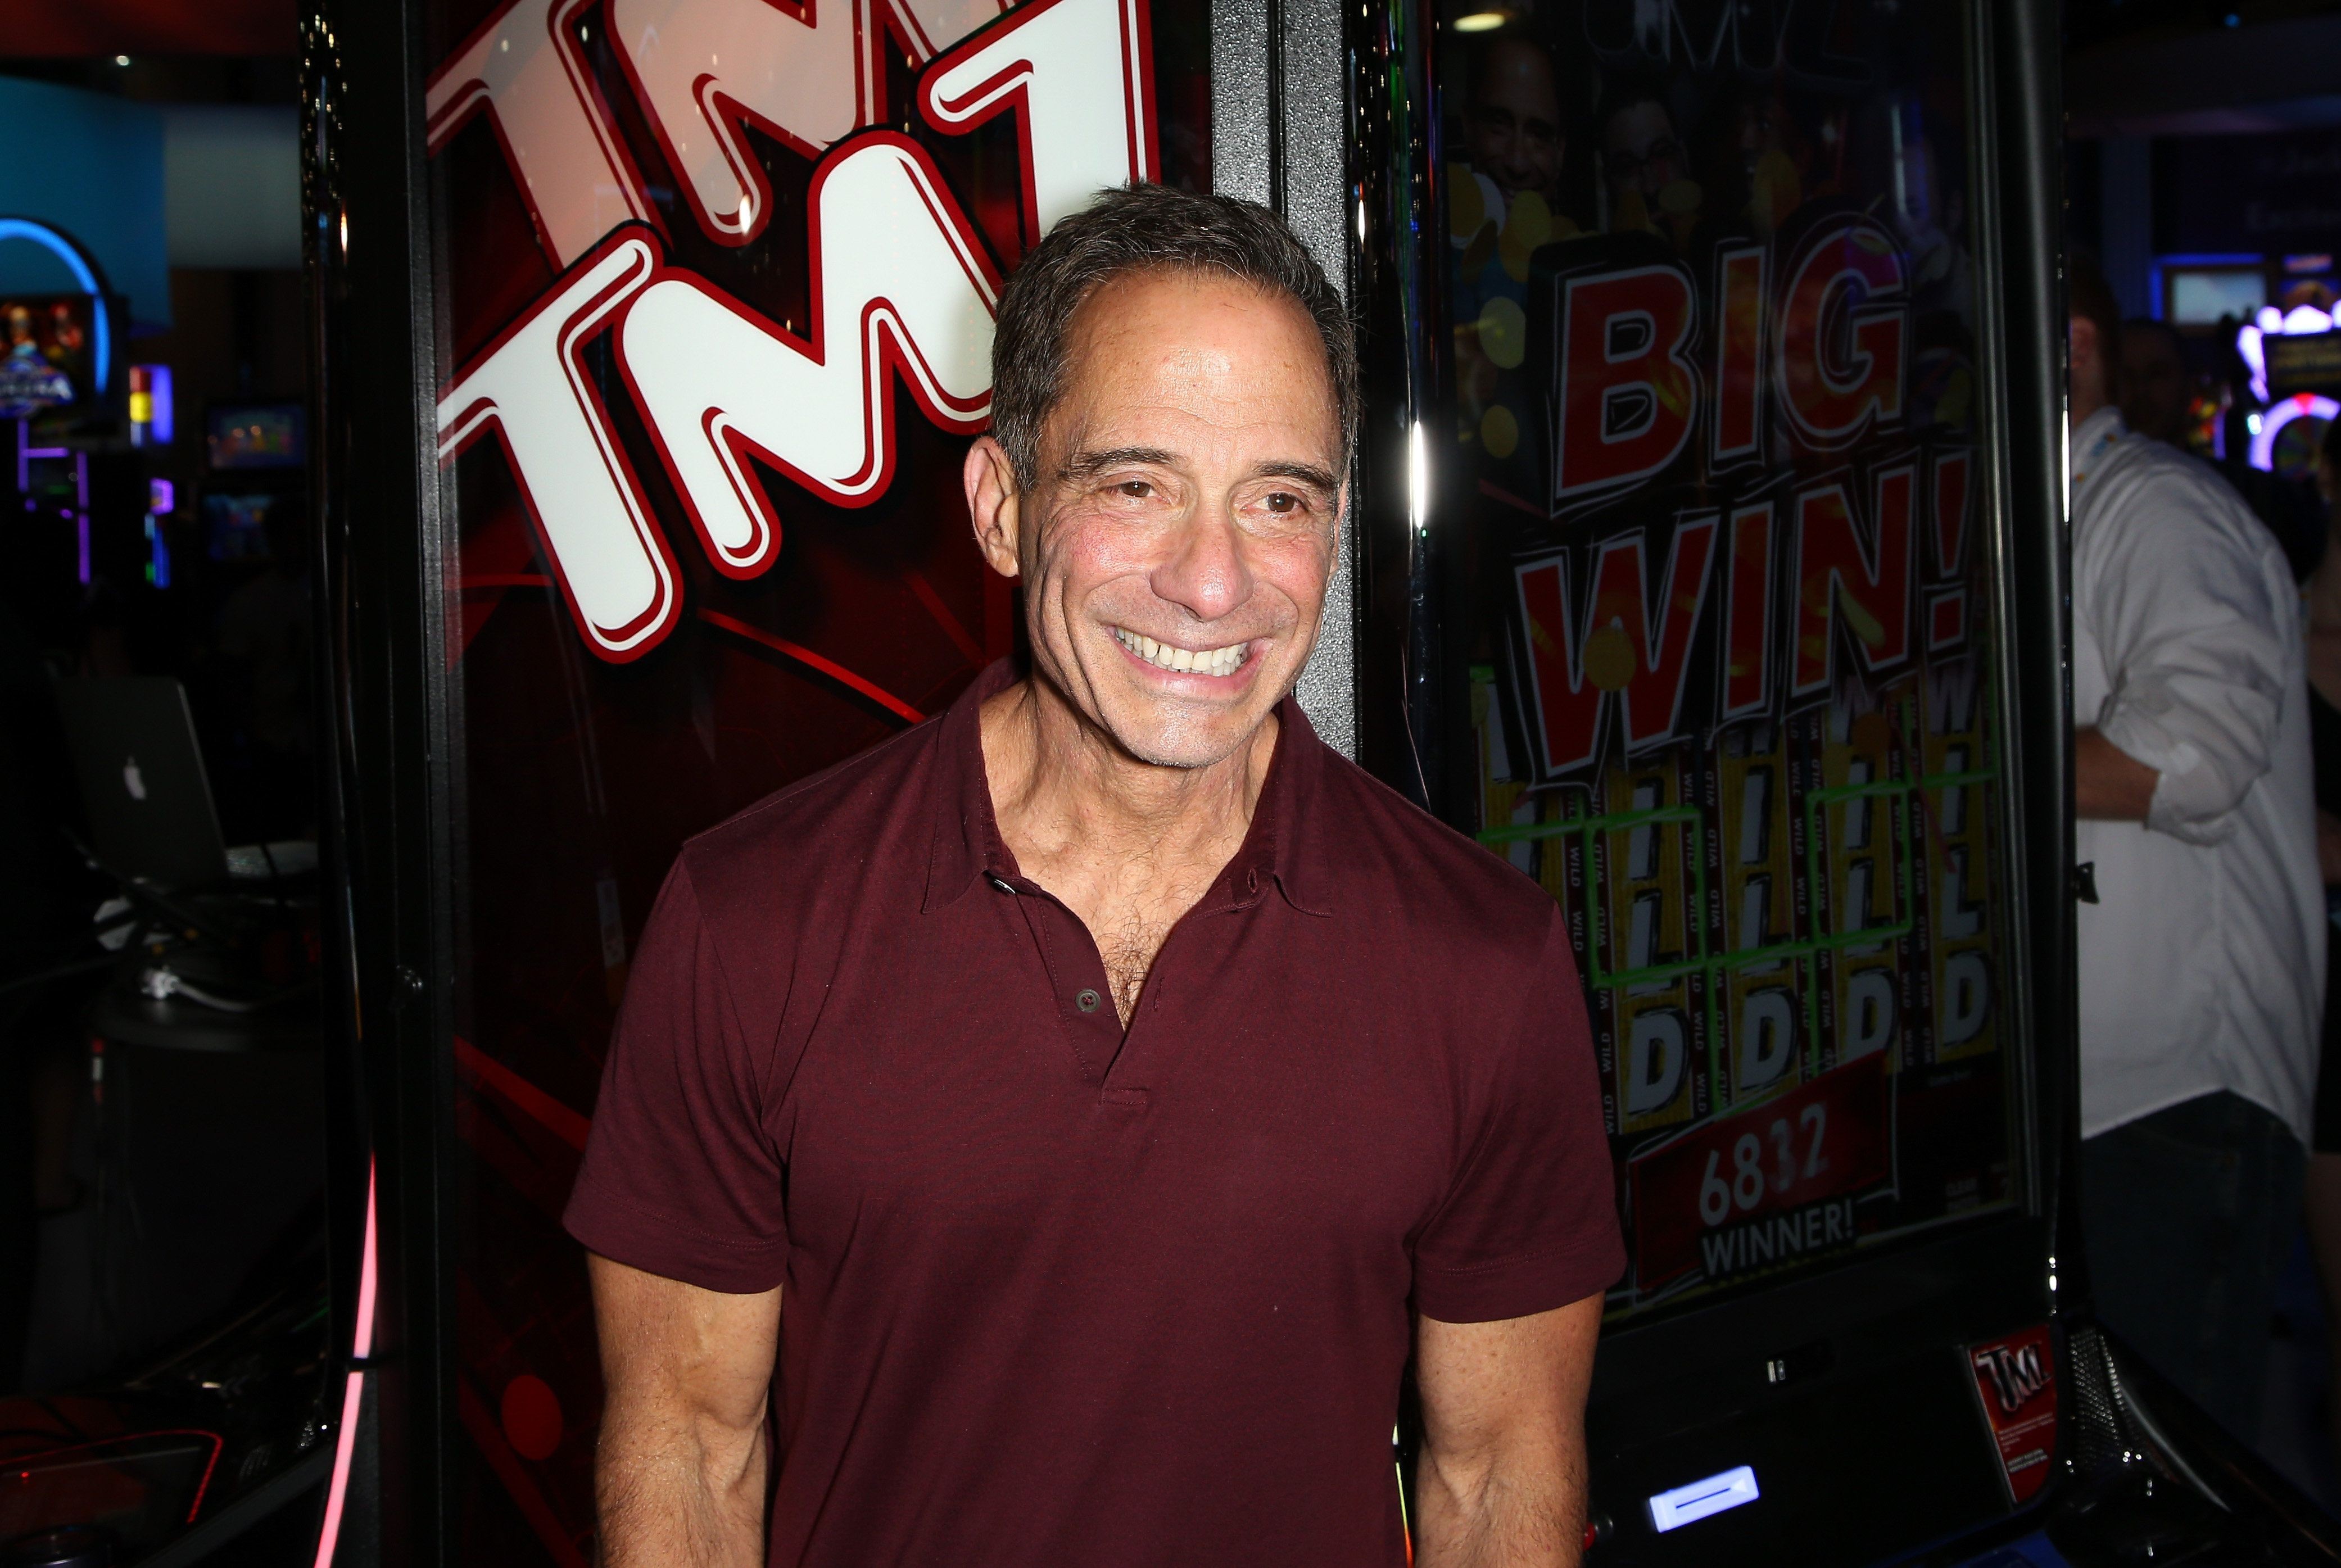 LAS VEGAS, NV - SEPTEMBER 30:  TMZ Executive Producer Harvey Levin unveils IGT's TMZ Video Slots at the Global Gaming Expo (G2E) 2015 at the Sands Expo and Convention Center on September 30, 2015 in Las Vegas, Nevada.  (Photo by Gabe Ginsberg/Getty Images)